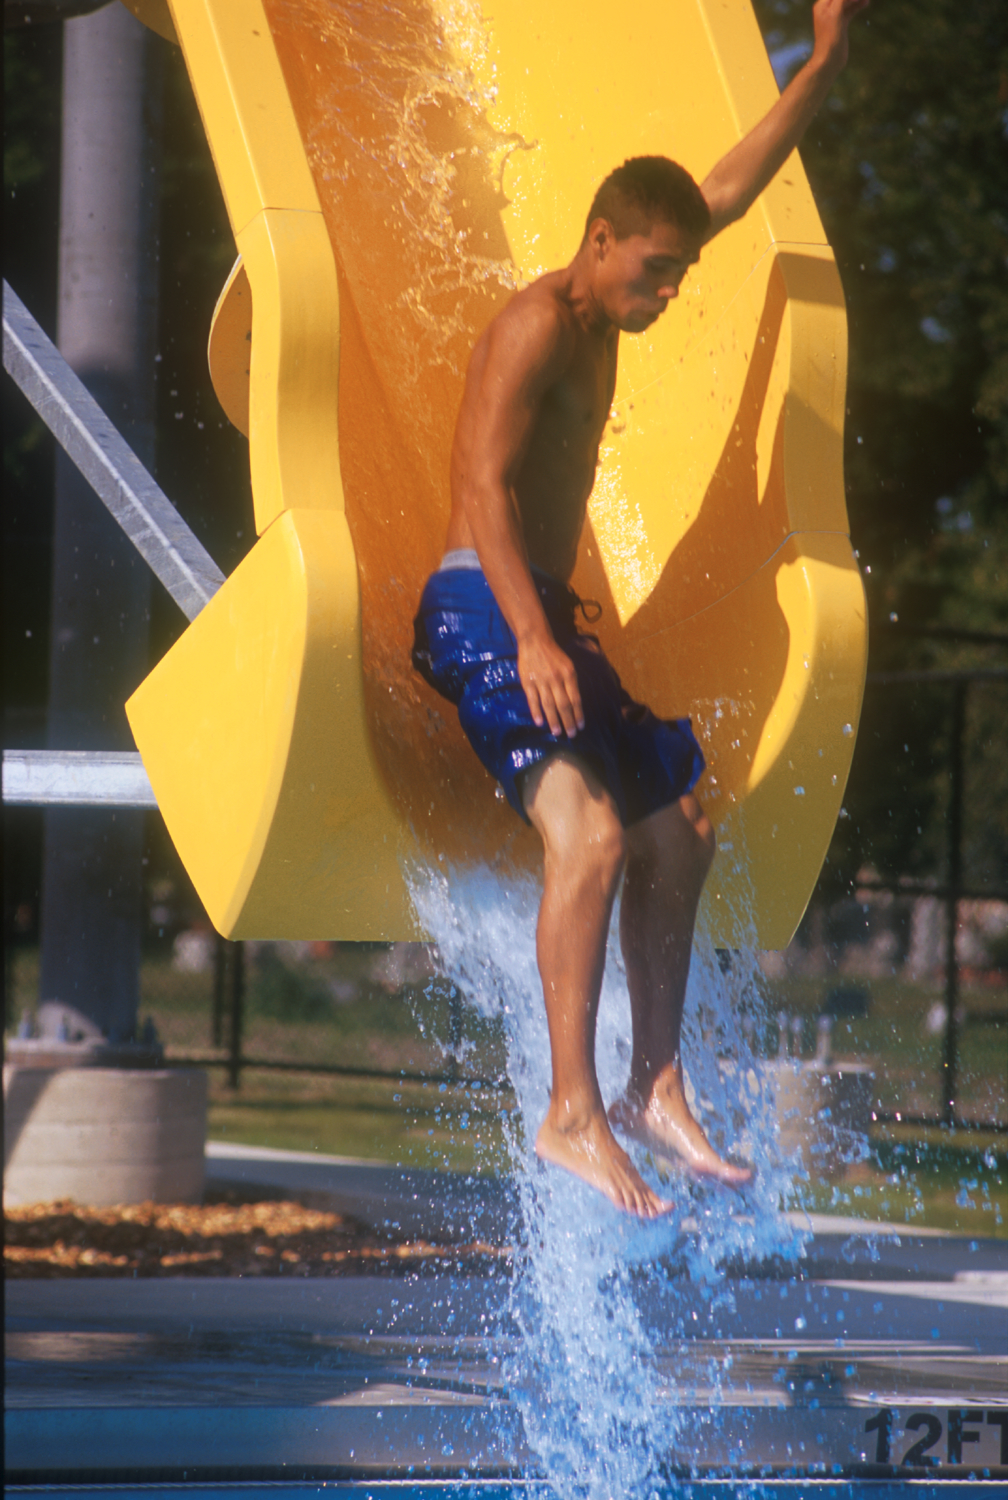 2005-025-Schiller-Park-older-kid-bottom-of-plunge-slide.jpeg